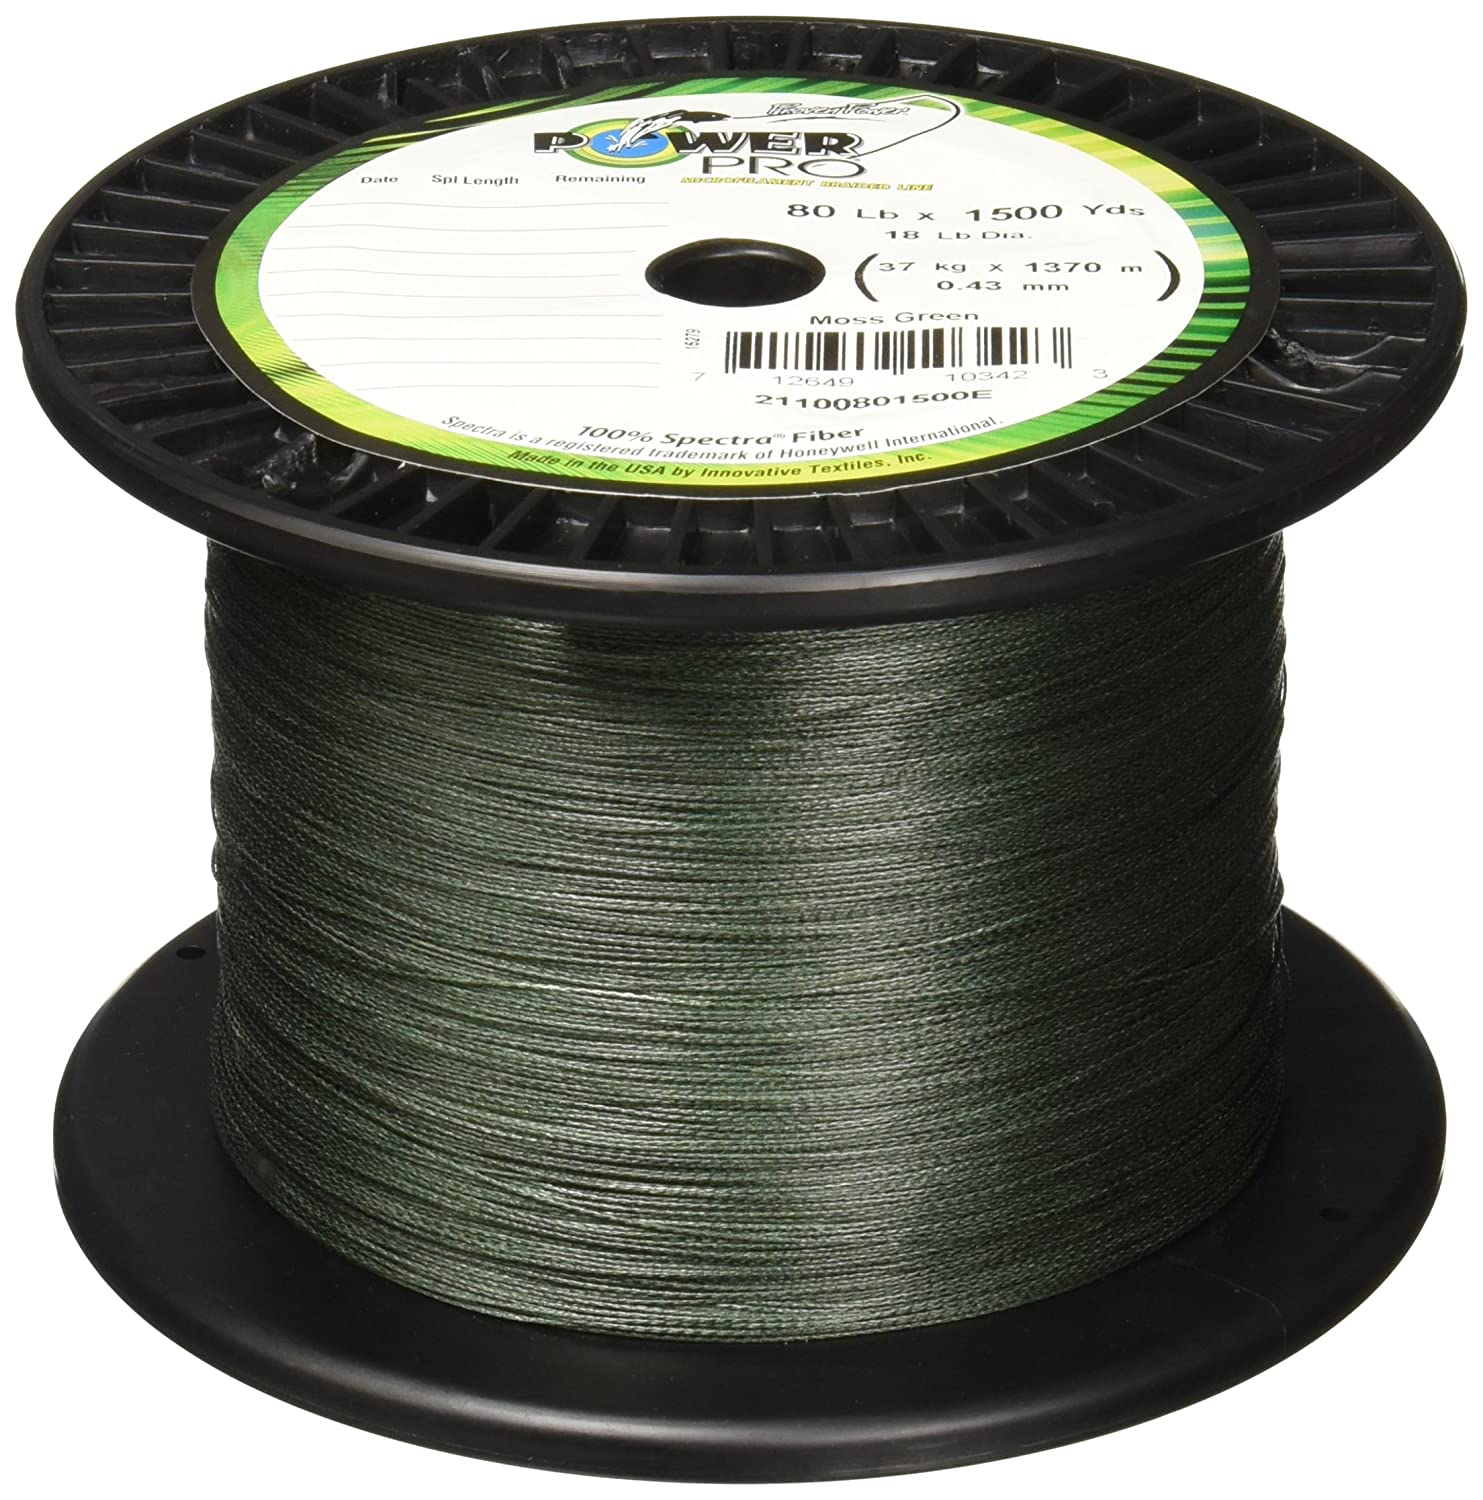 Power Pro Spectra Fiber Braided Fishing Line, Moss Green, 300YD/50LB